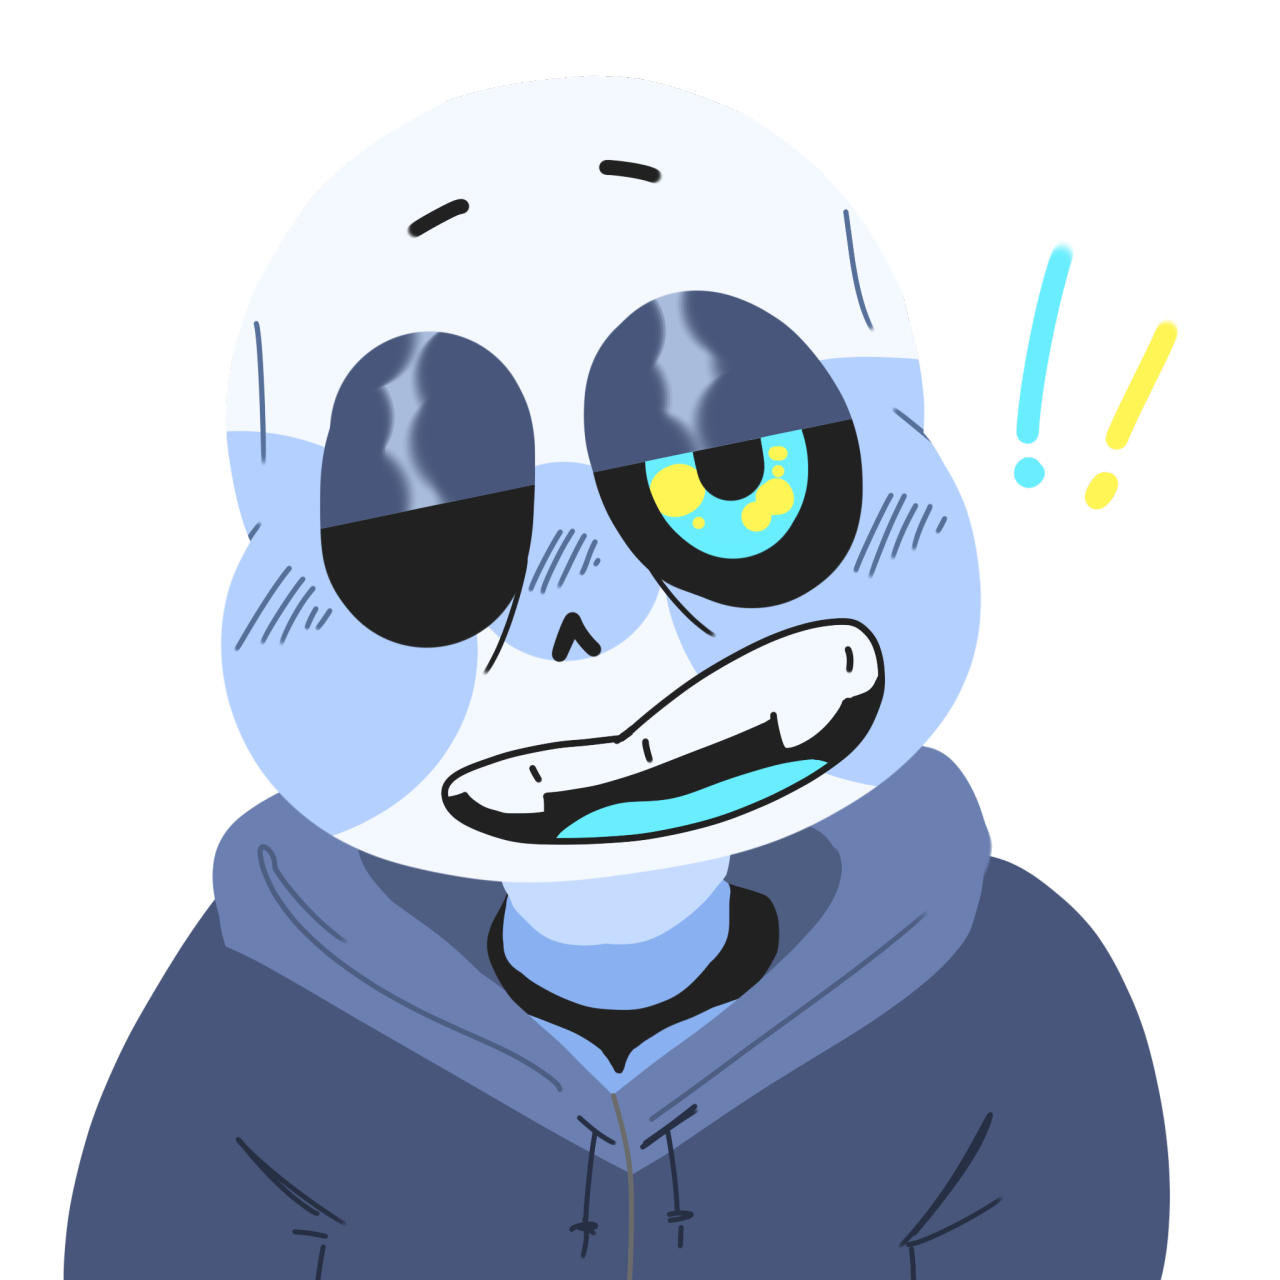 Biceps drawing sans. Thelostmoongazer practicing lineless and